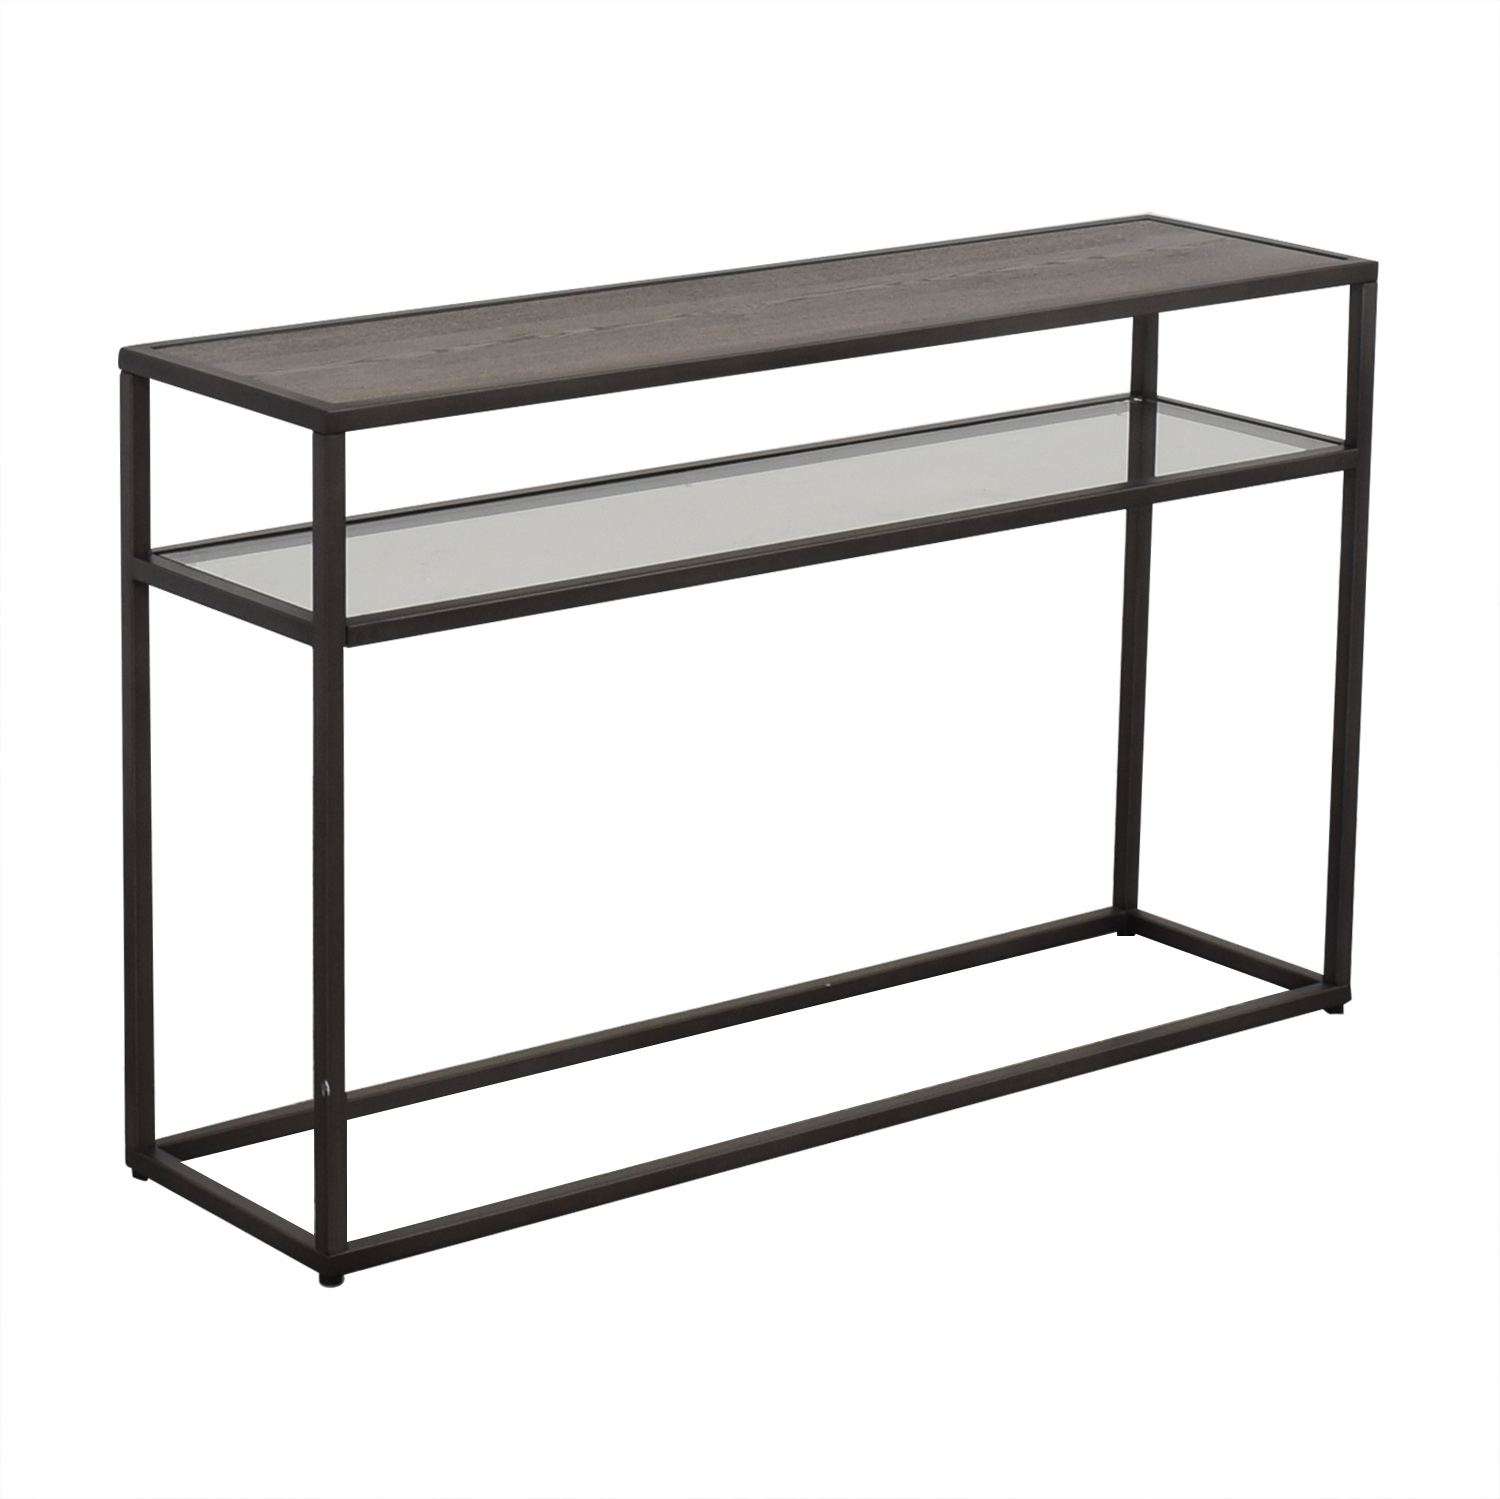 Crate & Barrel Switch Console Table Crate & Barrel